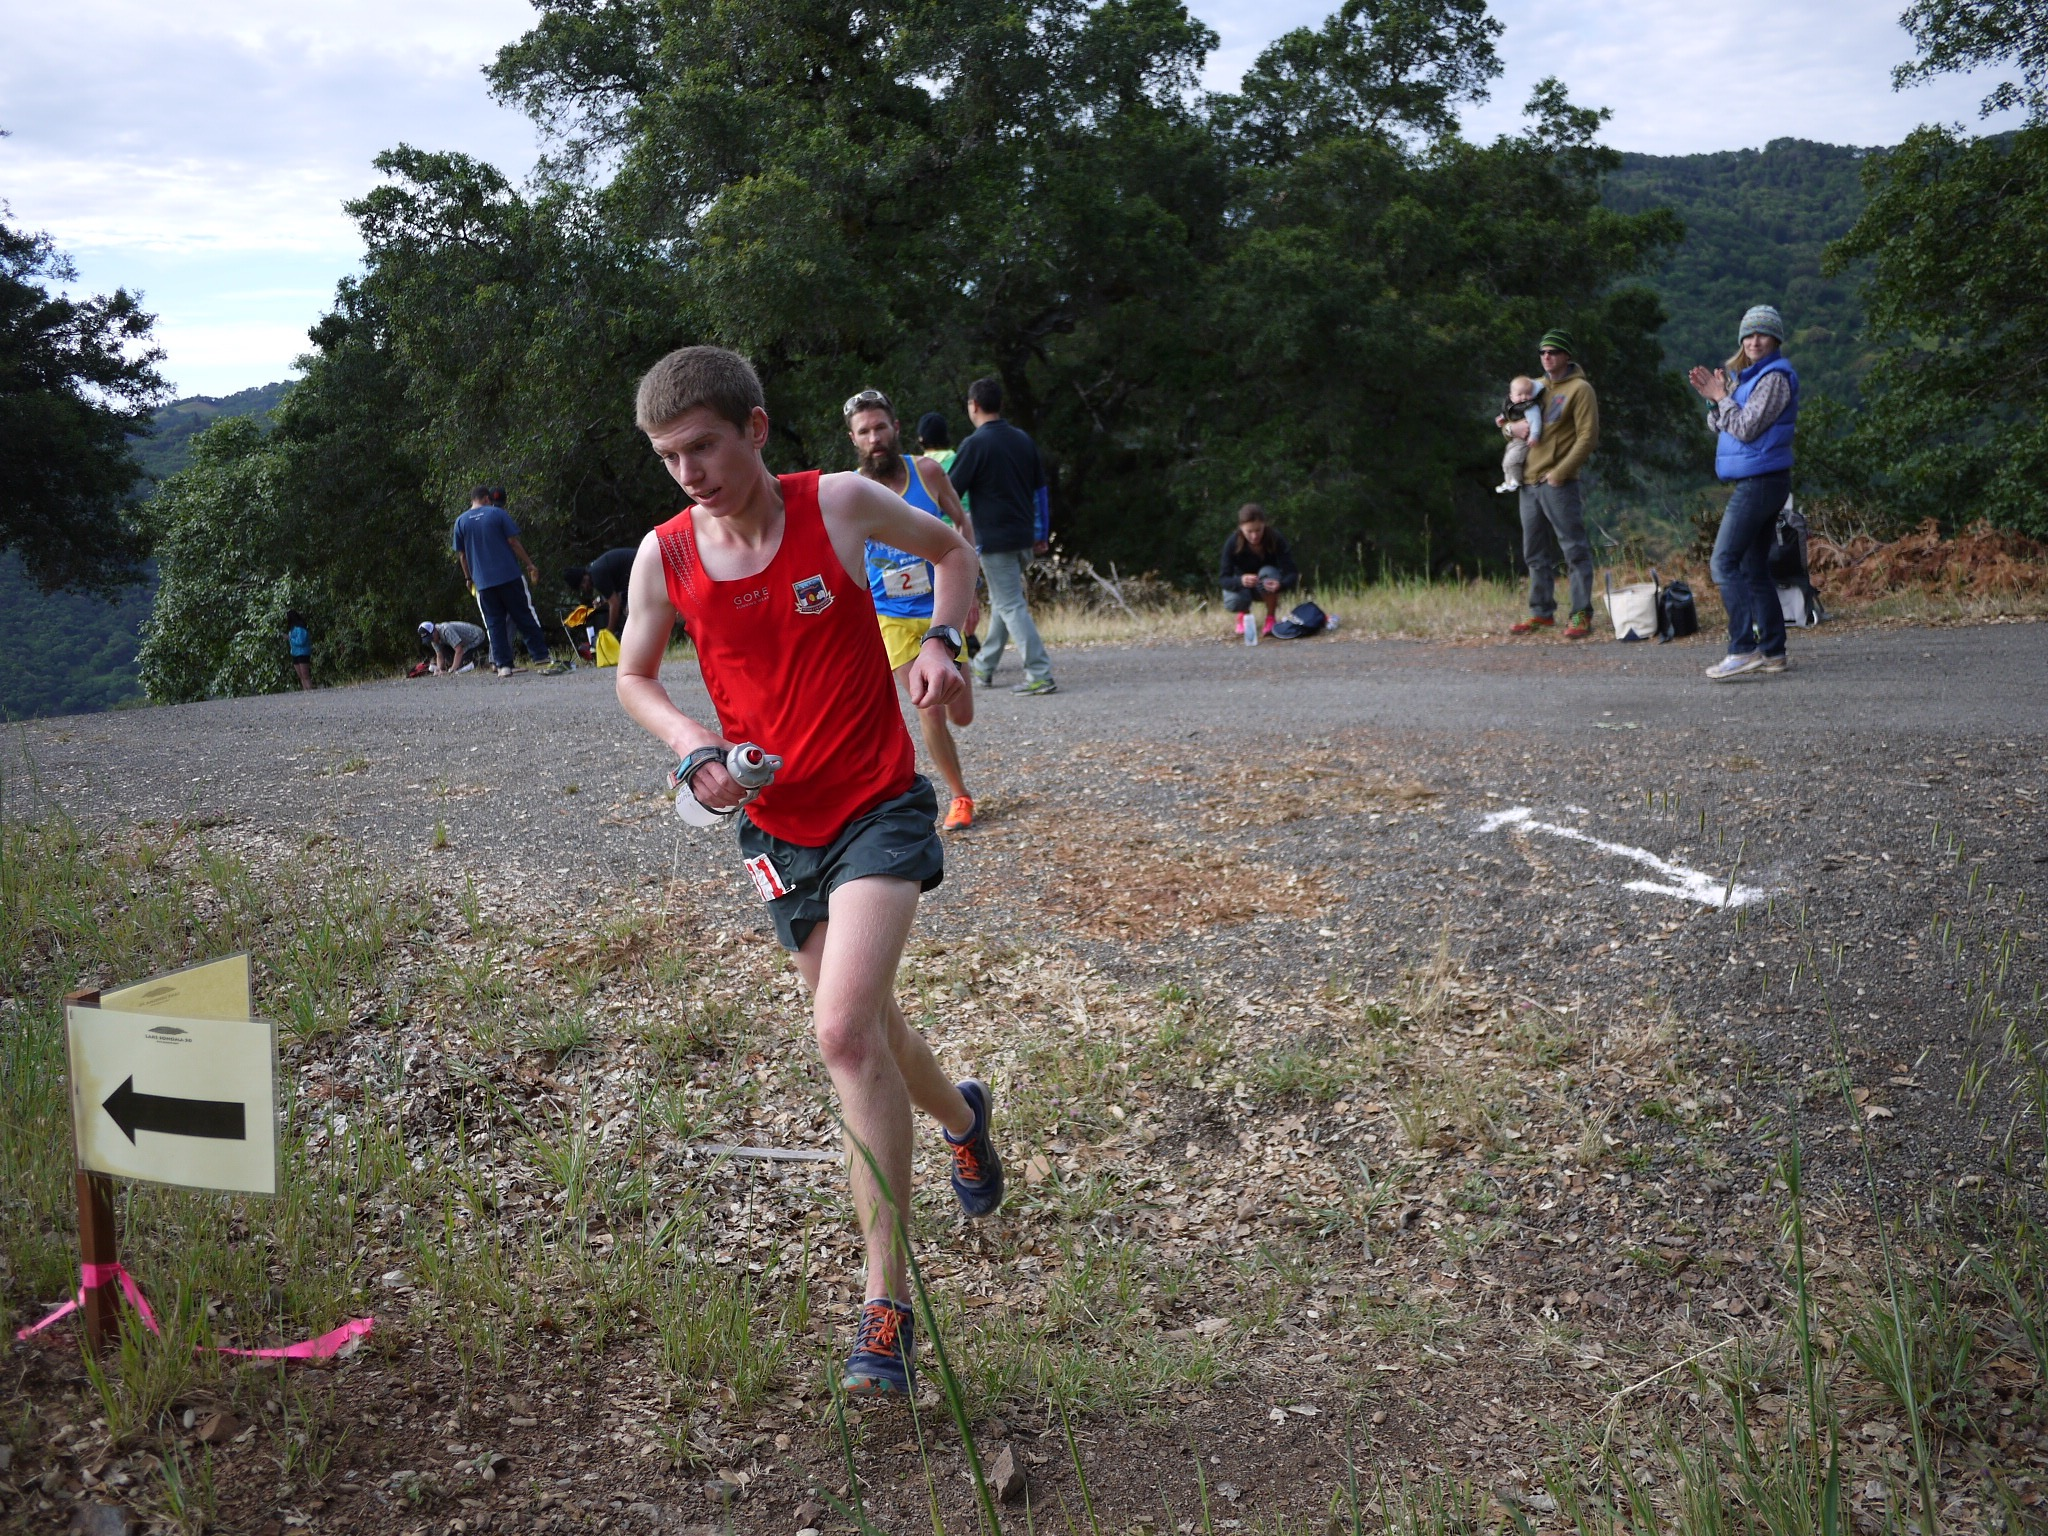 Jared Hazen, followed by Rob Krar, at 2015 Lake Sonoma.